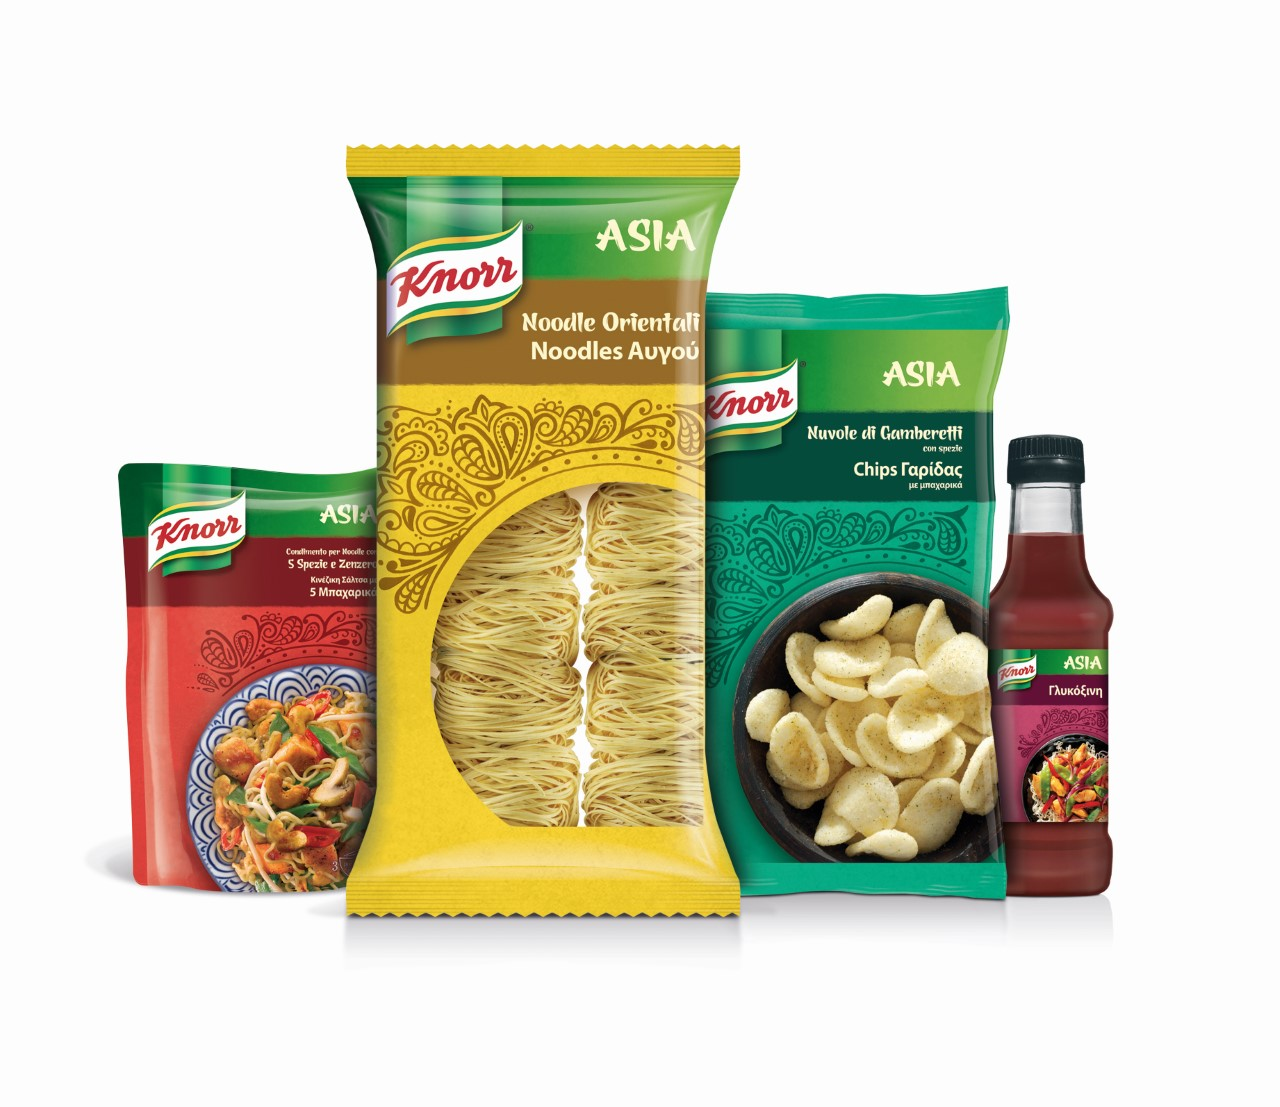 thumbnail_Σειρά Knorr Asia